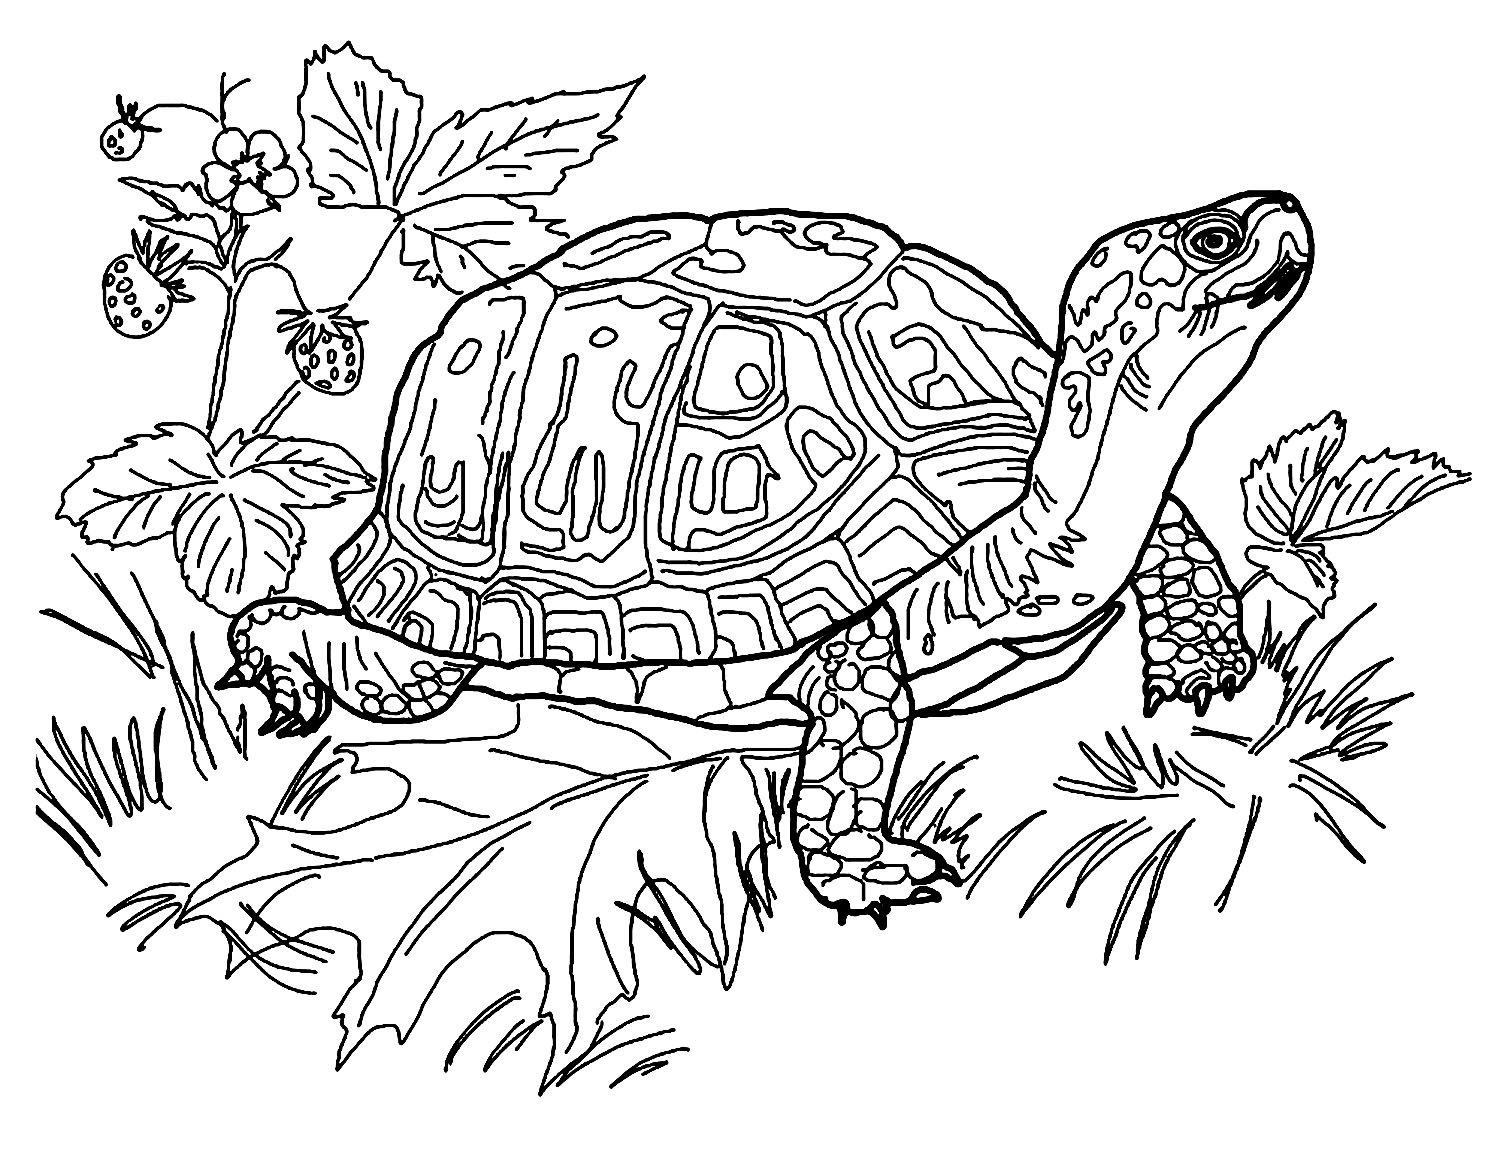 Turtles free to color for kids - Turtles Kids Coloring Pages